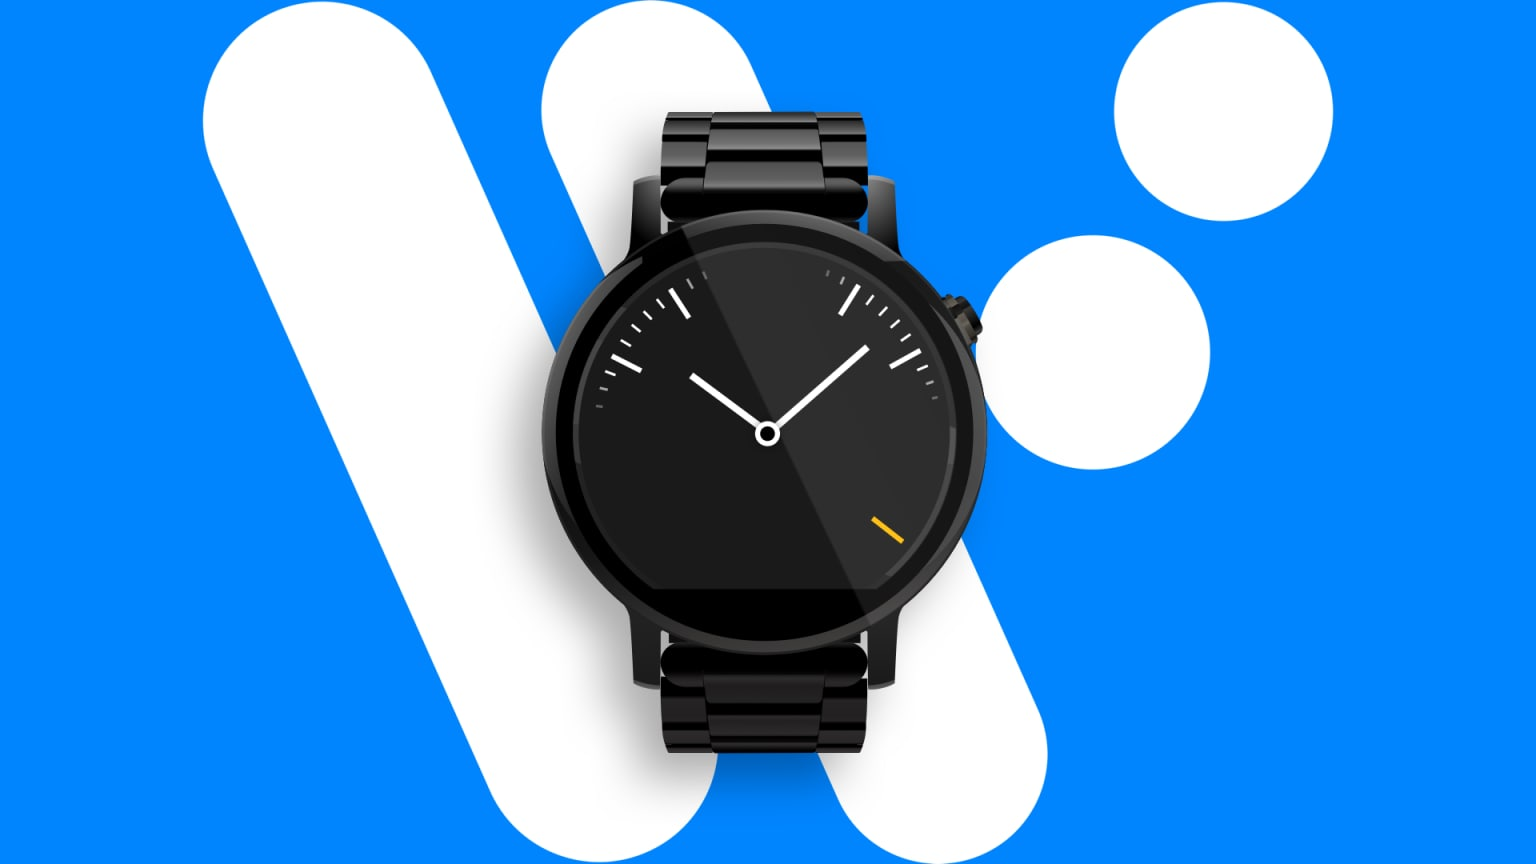 AndroidWear Watchfaces